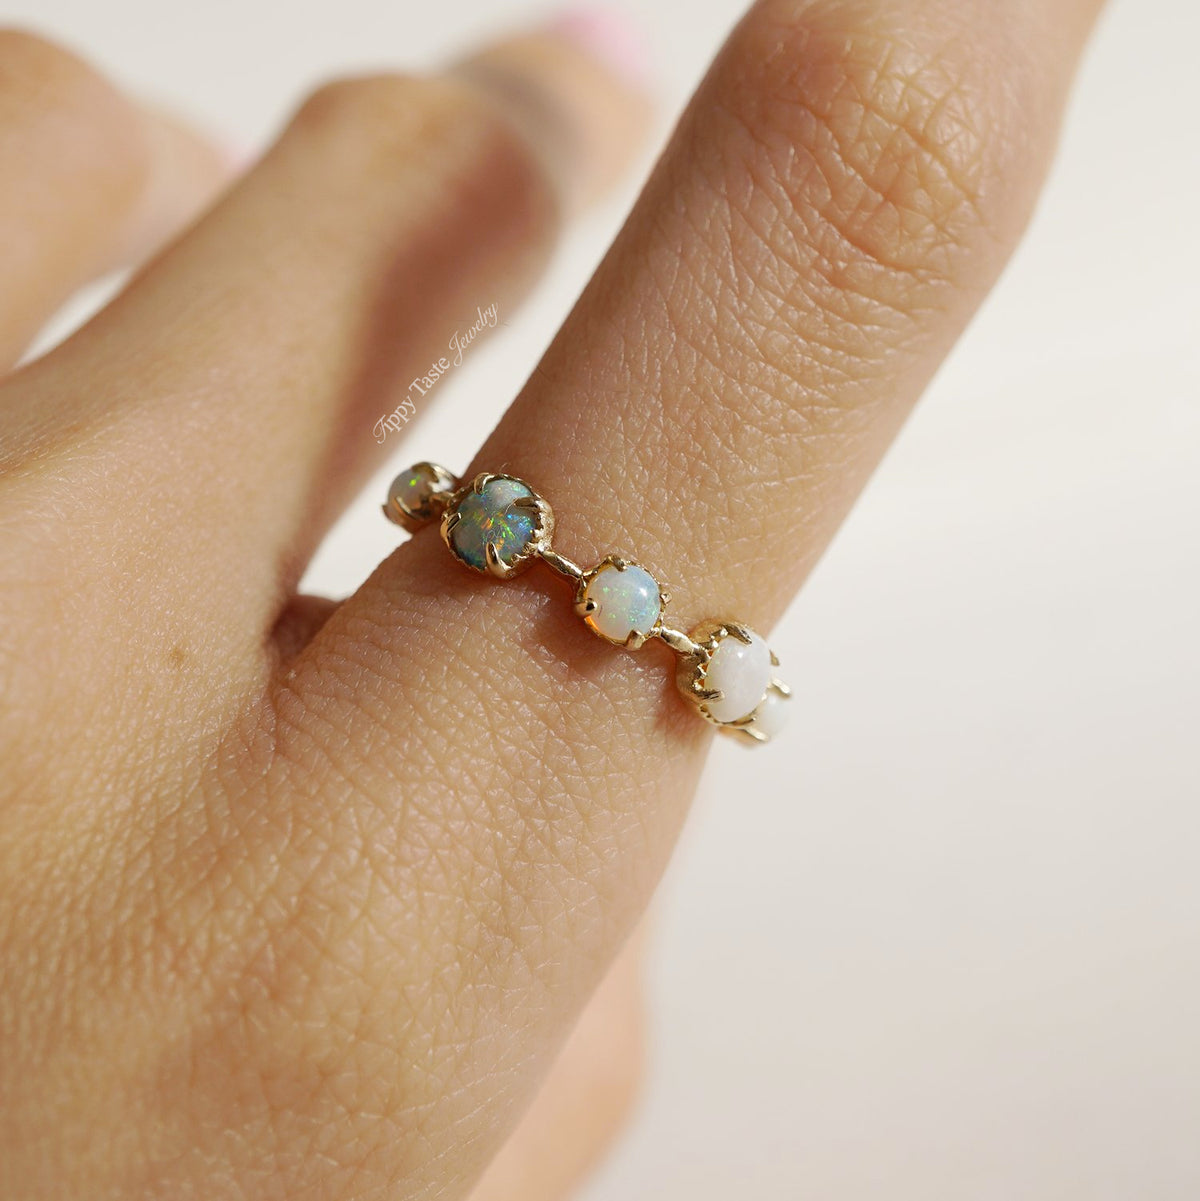 14K Oceanic Opal Ring - Tippy Taste Jewelry